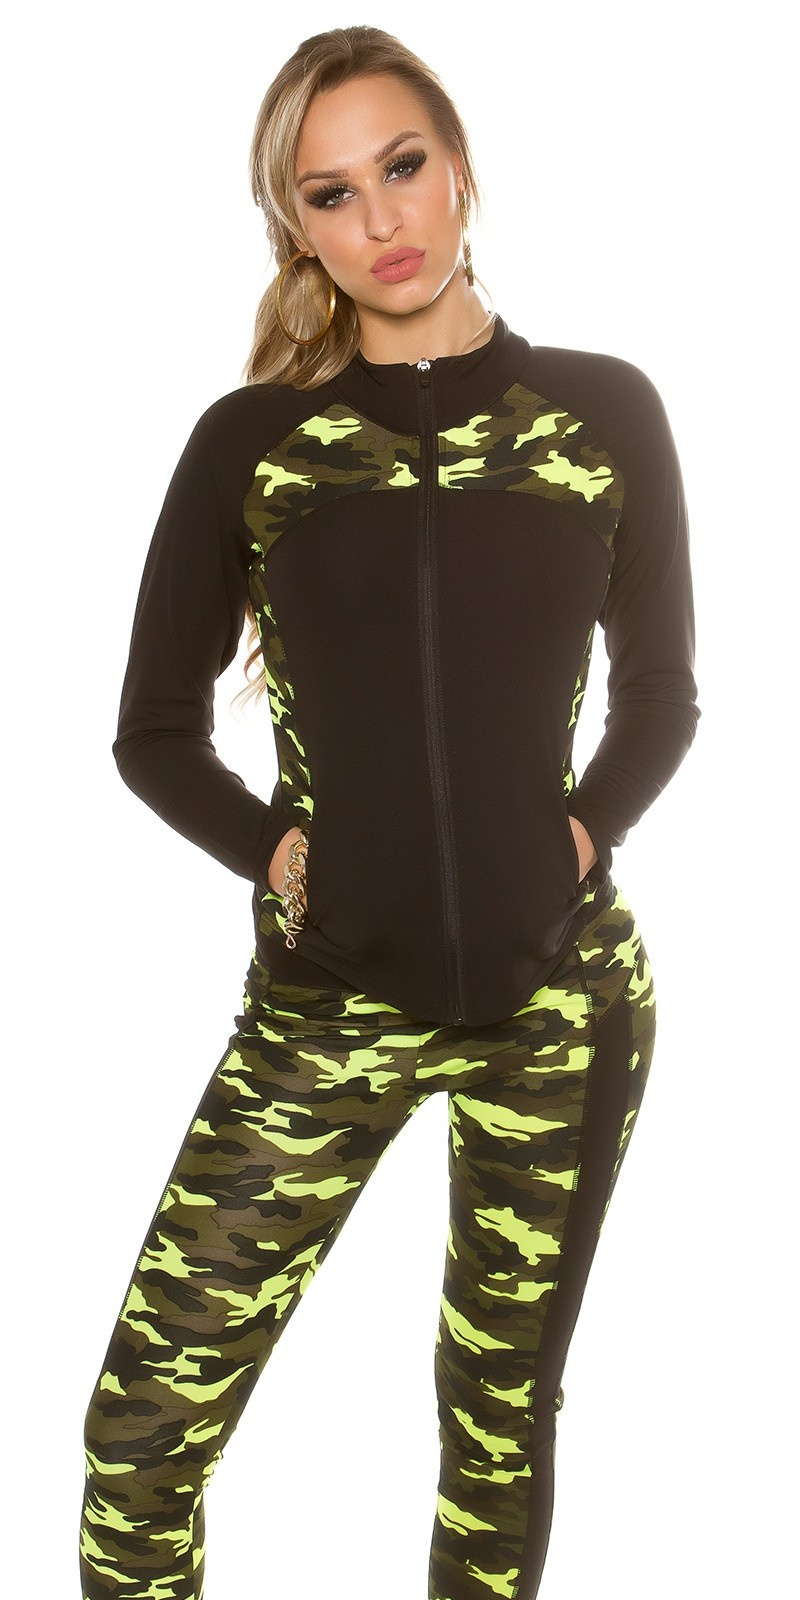 Trendy Workout Jacket with Camouflage Print Yellow